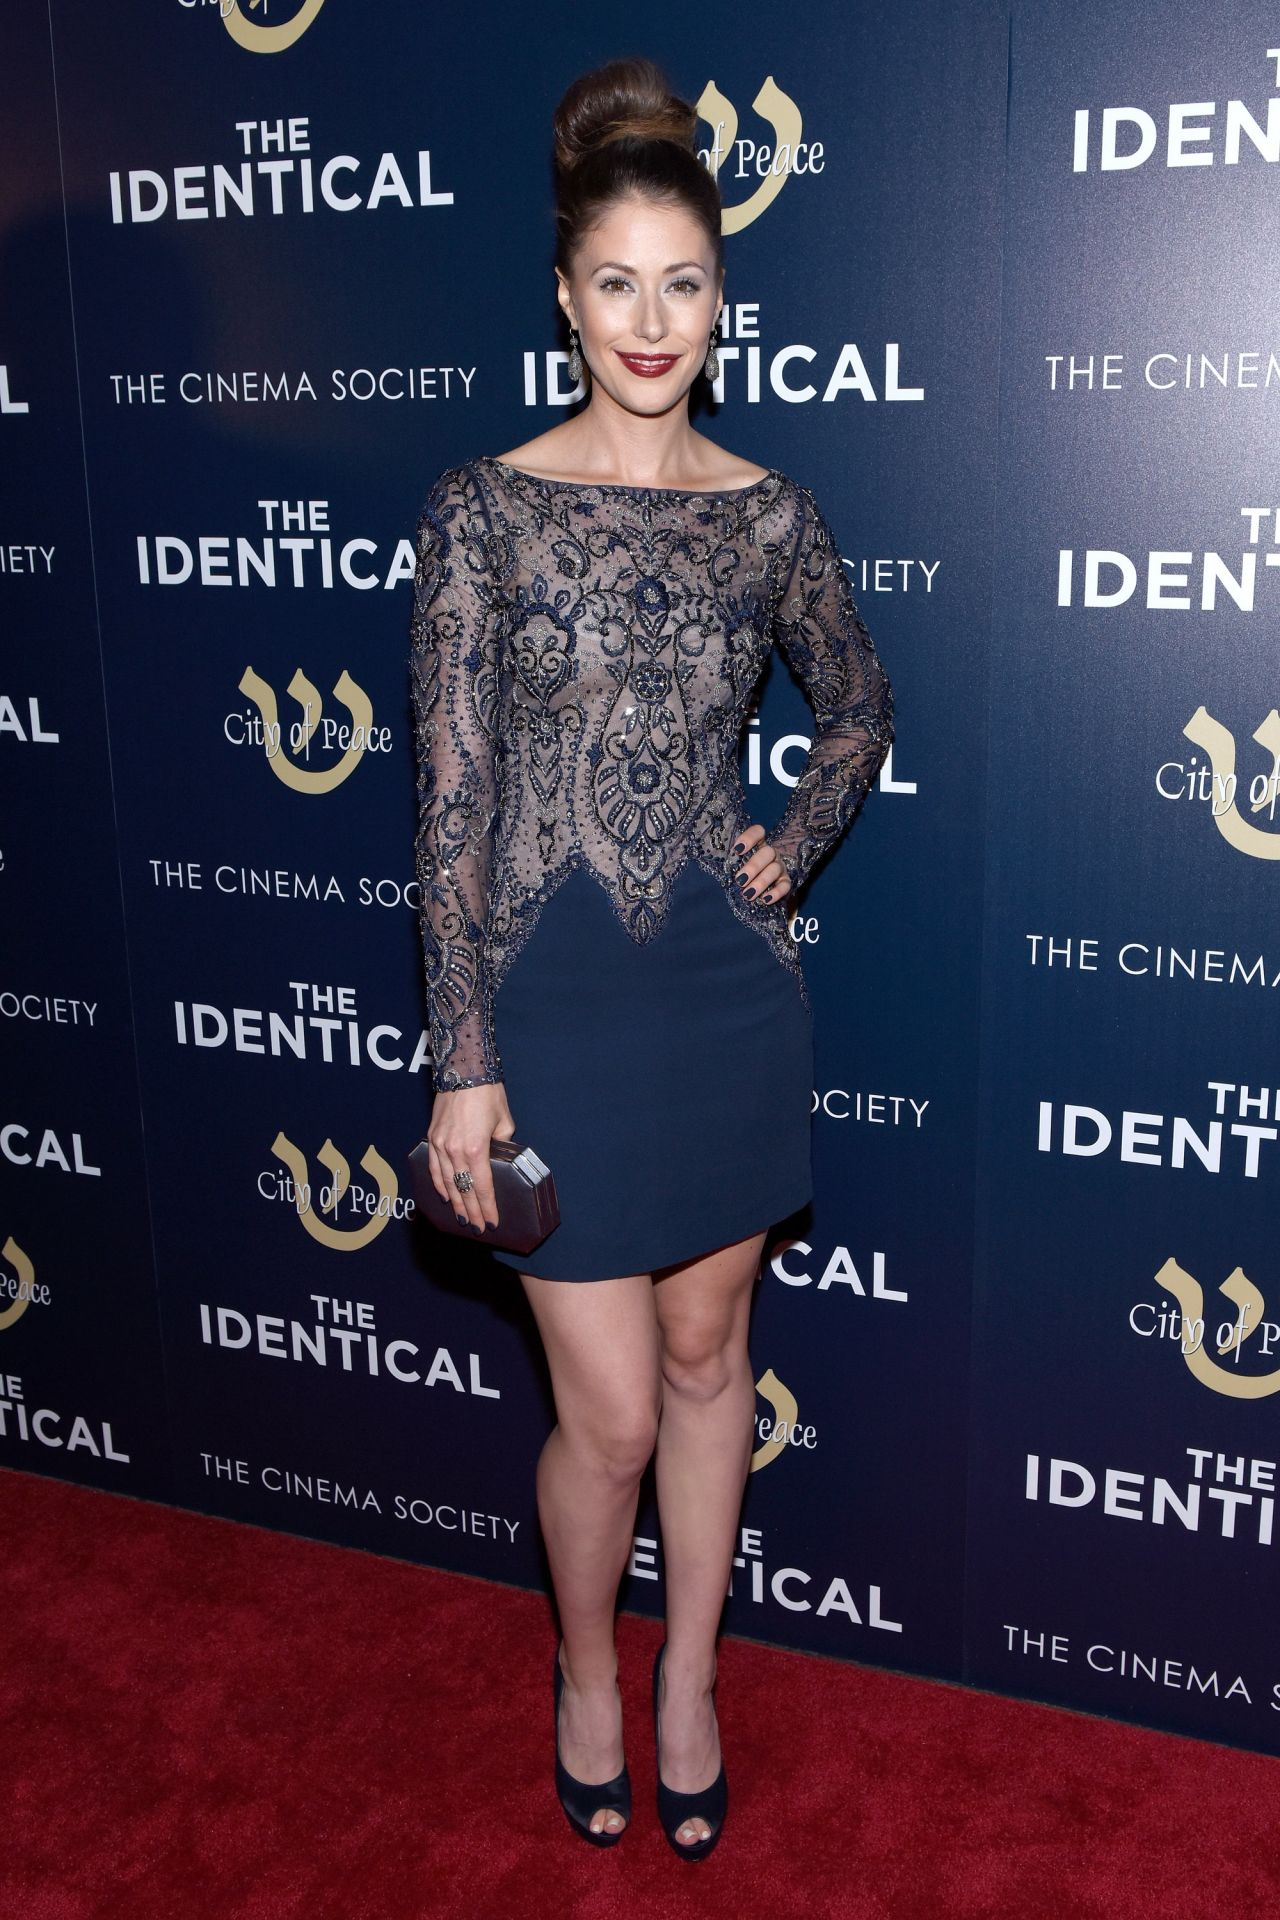 THE IDENTICAL New York Premiere - Amanda Crew